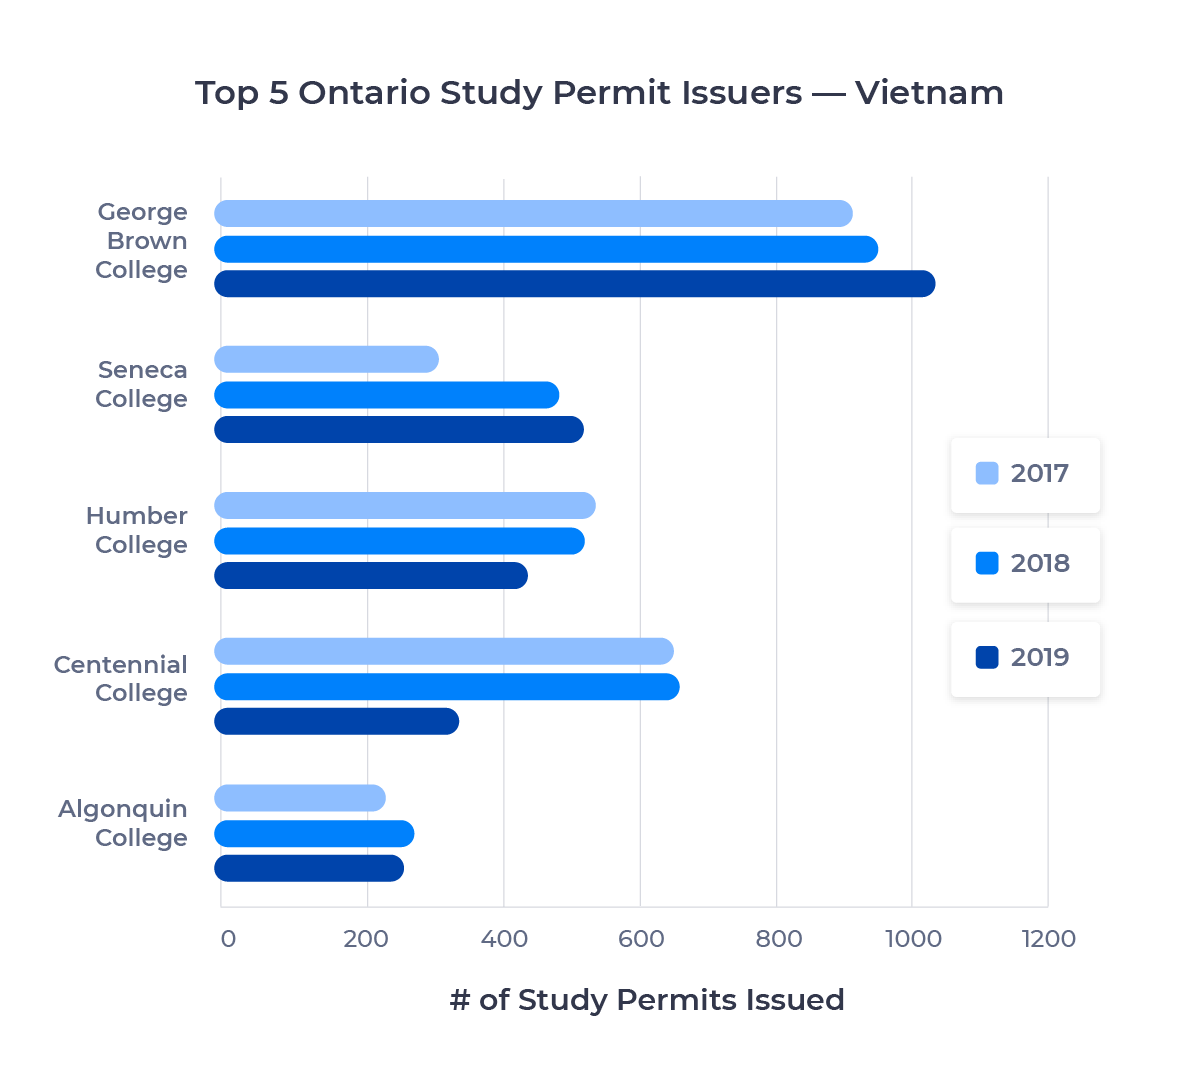 Bar chart showing the top five schools in Ontario for Vietnamese students by study permits issued. Described in detail below.